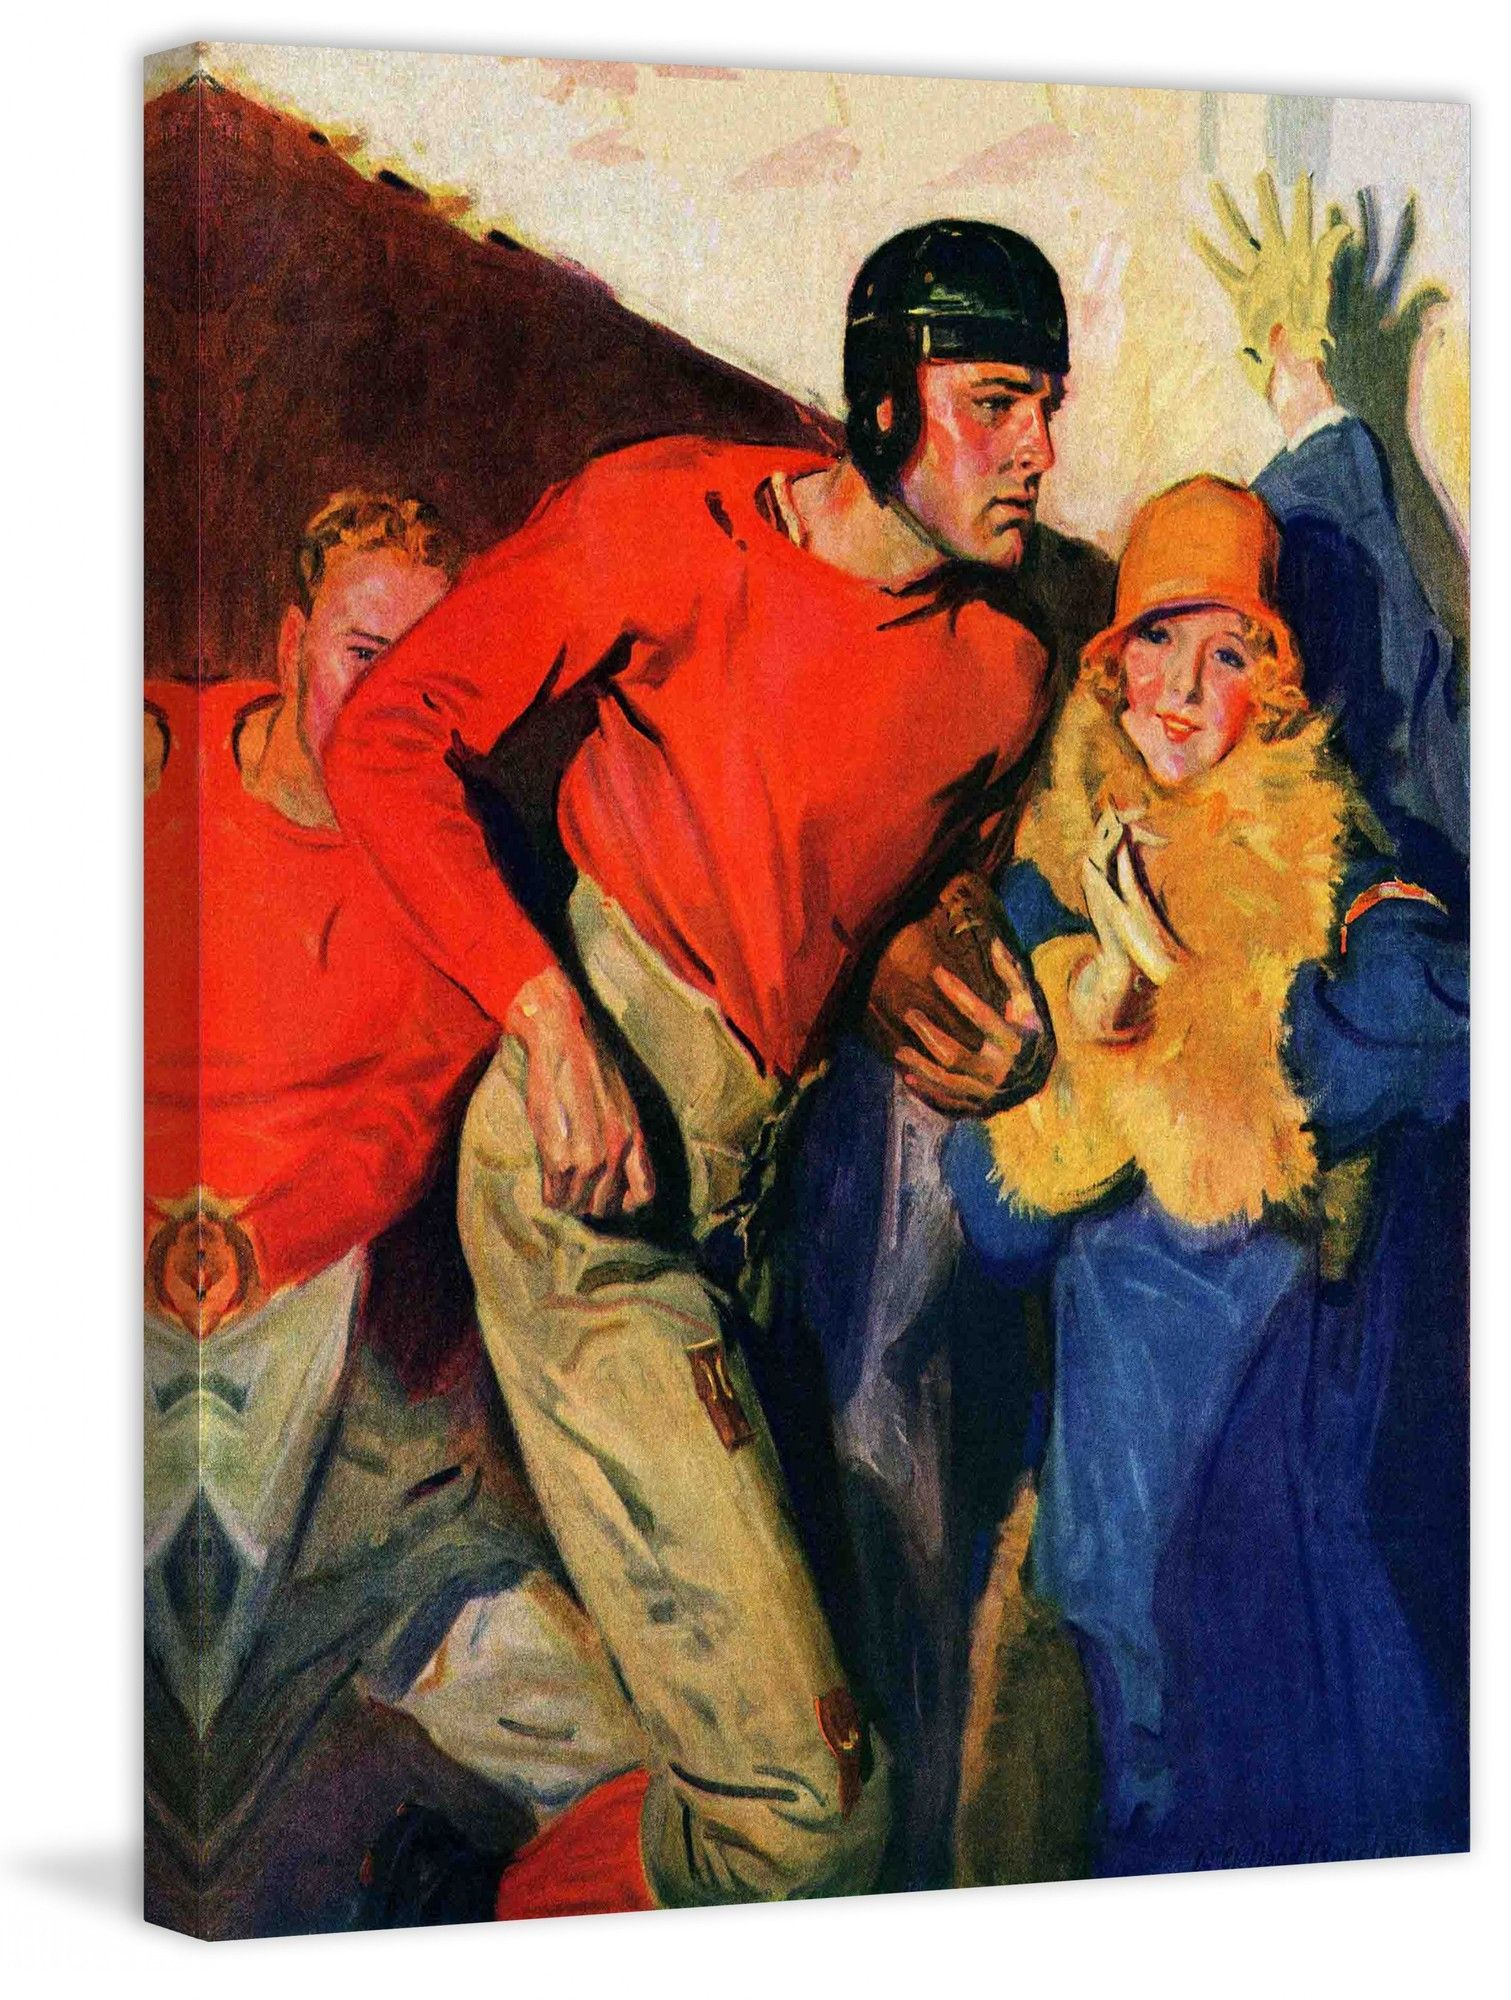 Football Player and Fan by McClelland Barclay Painting Print on Canvas